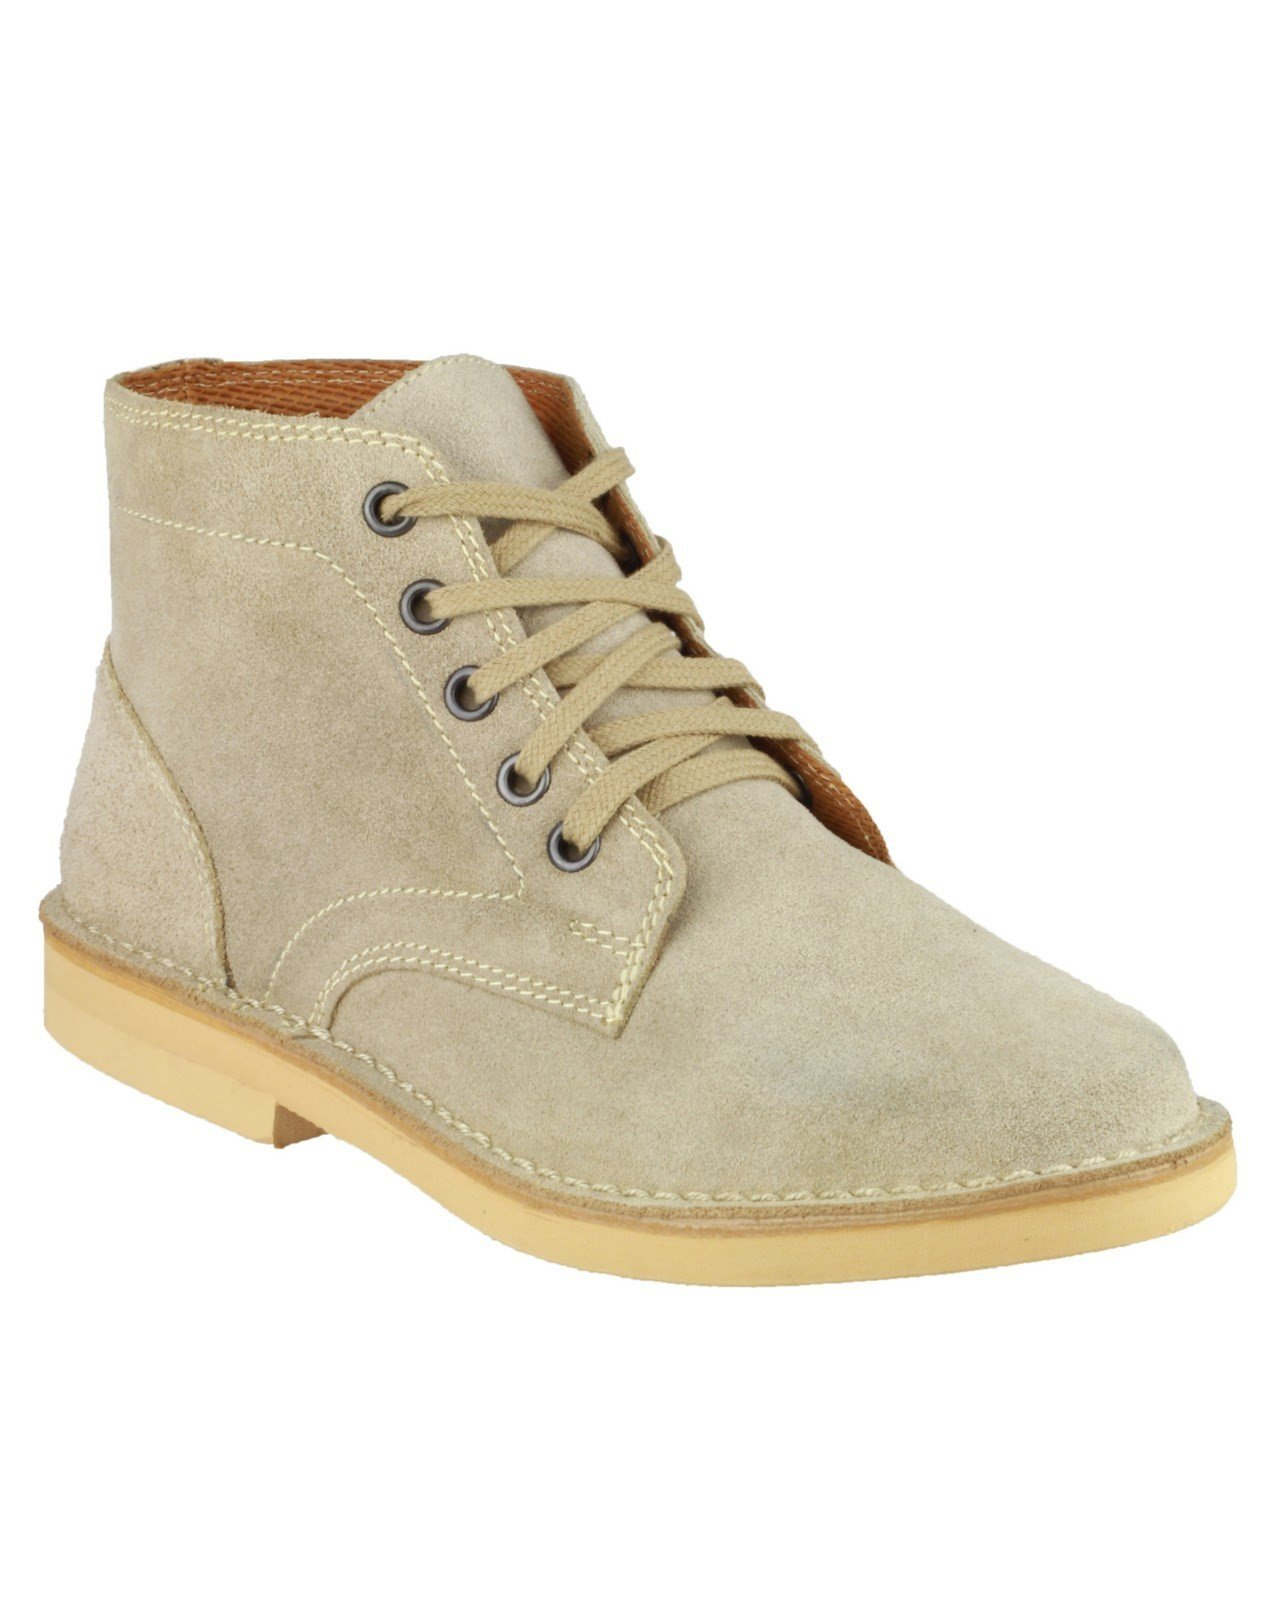 Amblers Men's Lace up Desert Boot Honey 07887 - Taupe 6